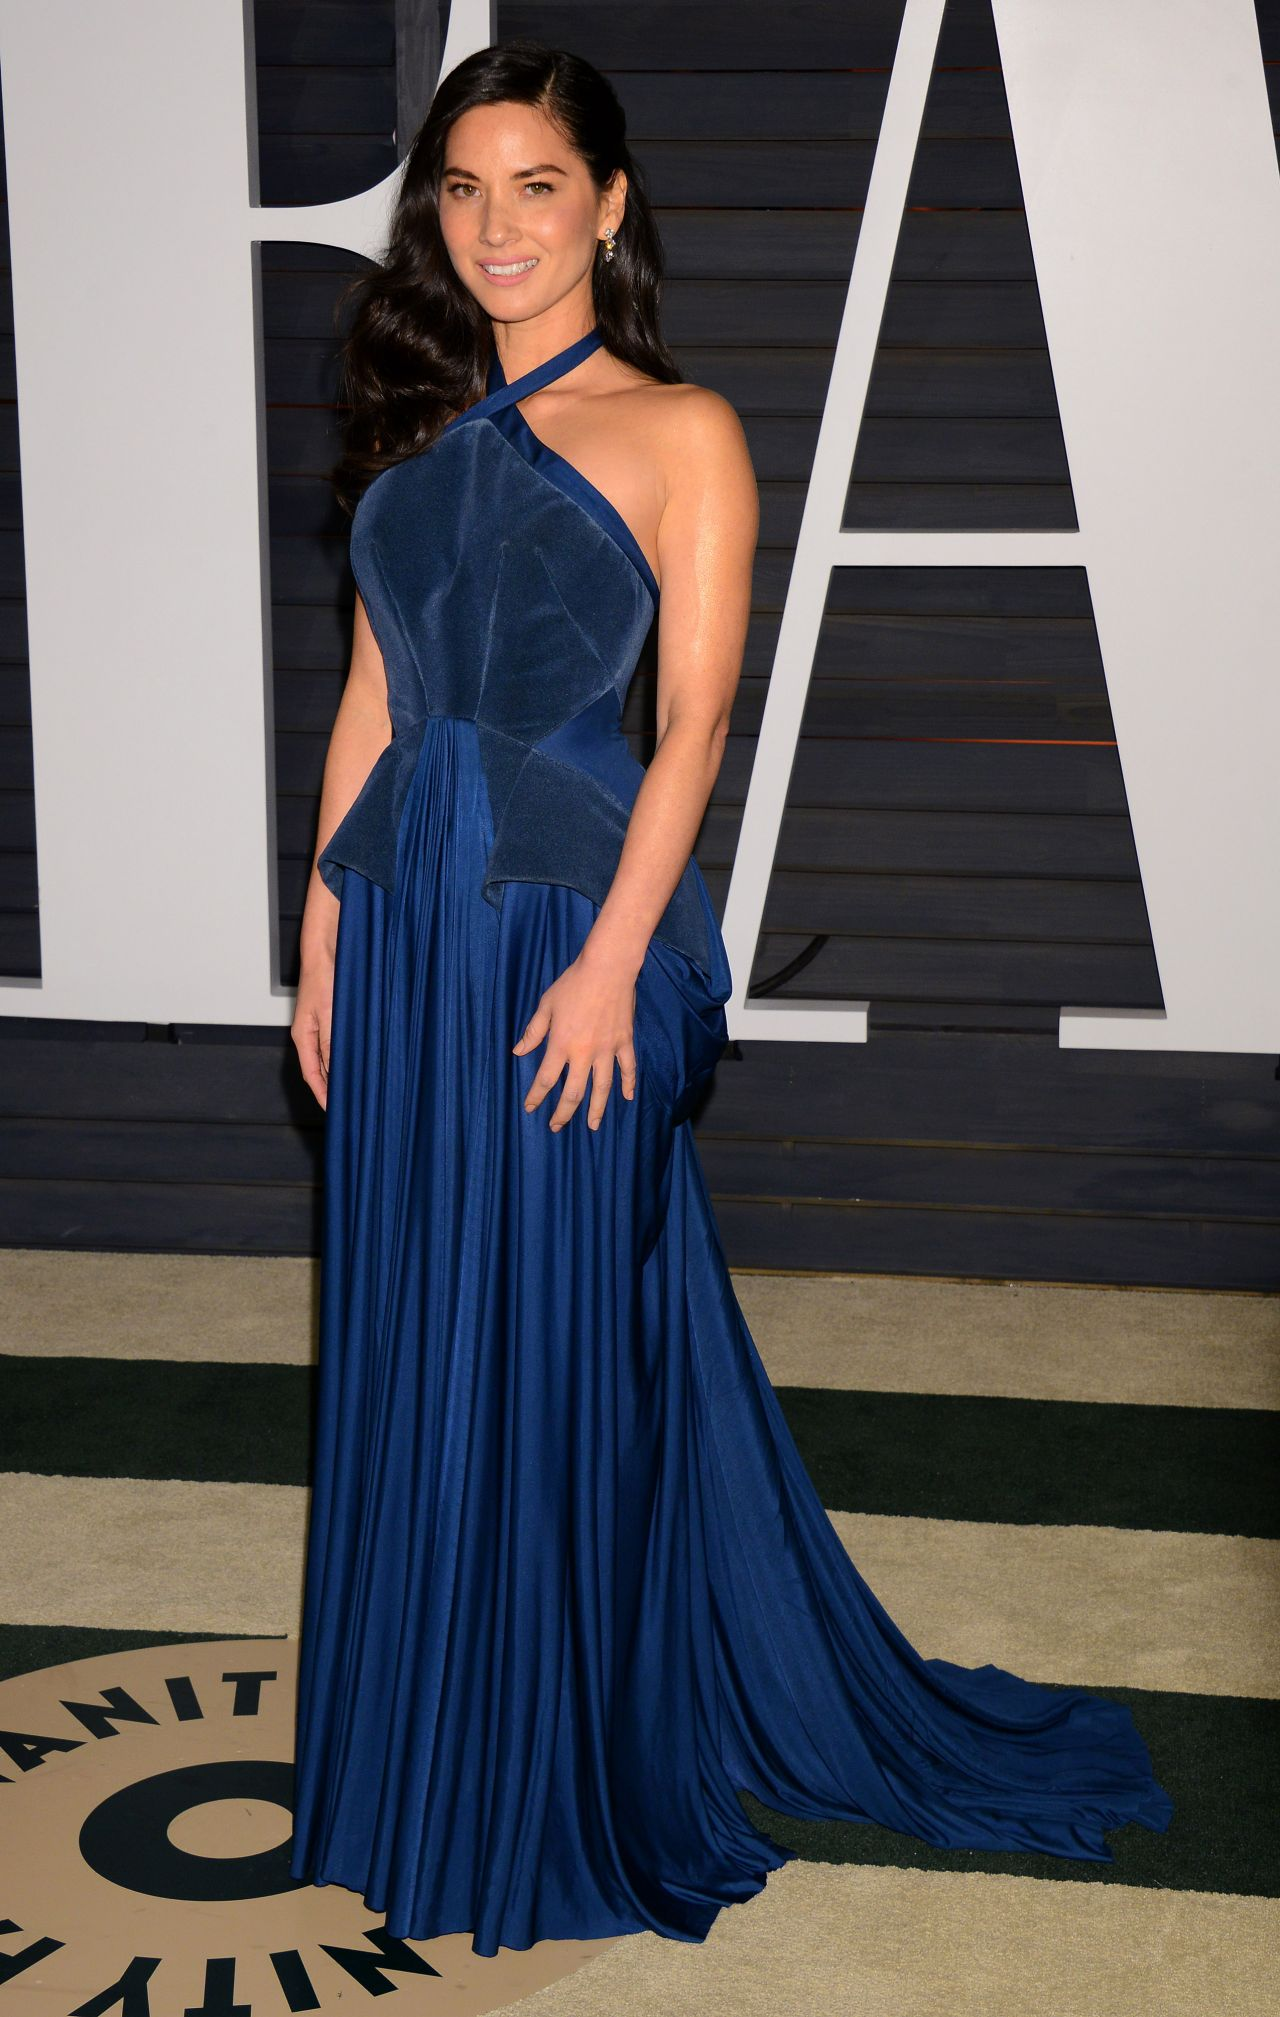 Olivia Munn - 2015 Vanity Fair Oscar Party in Hollywood